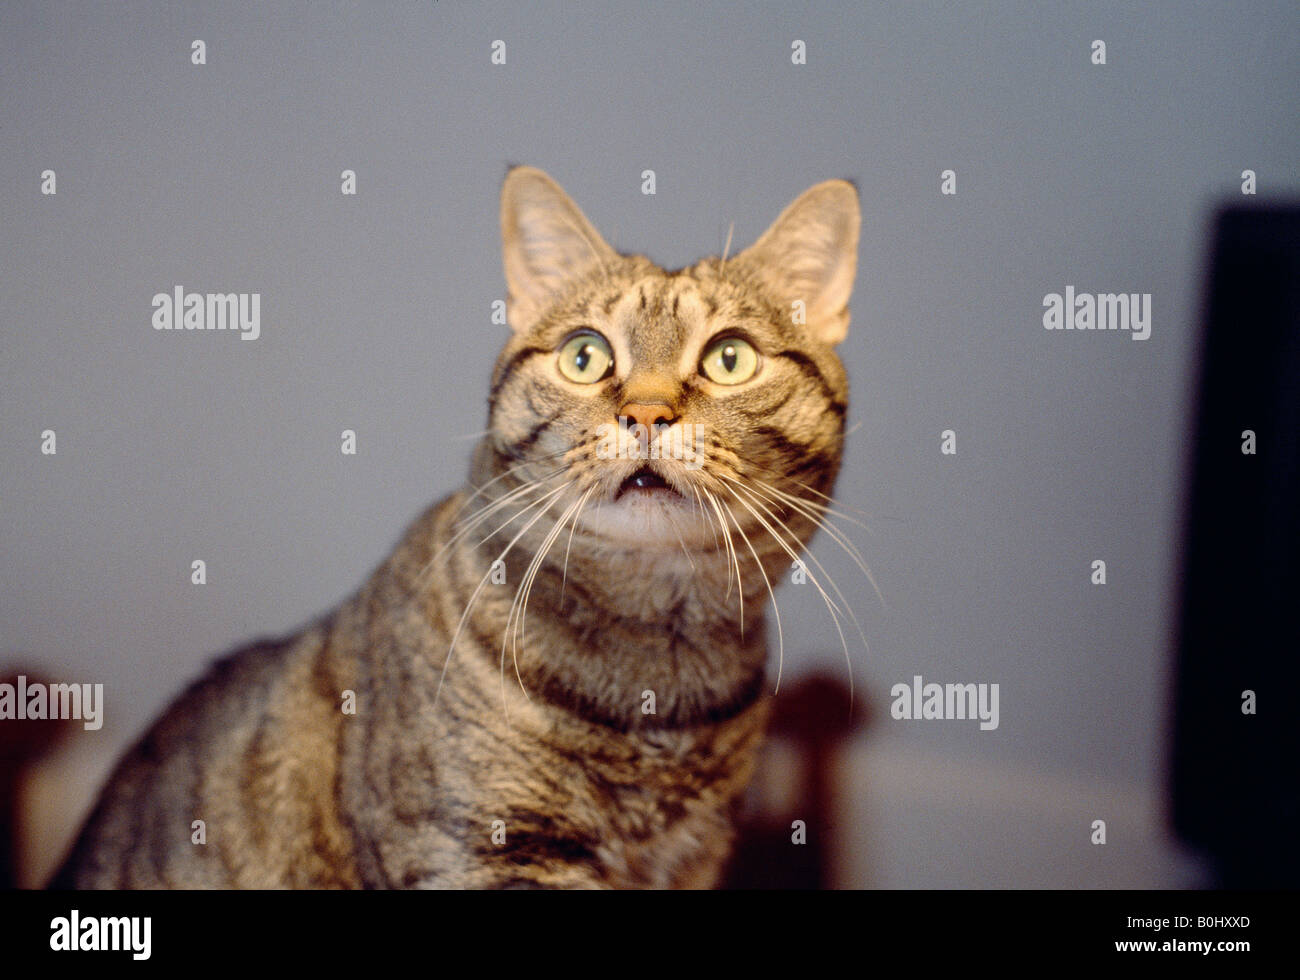 Tabby cat looking up watchfully. Stock Photo